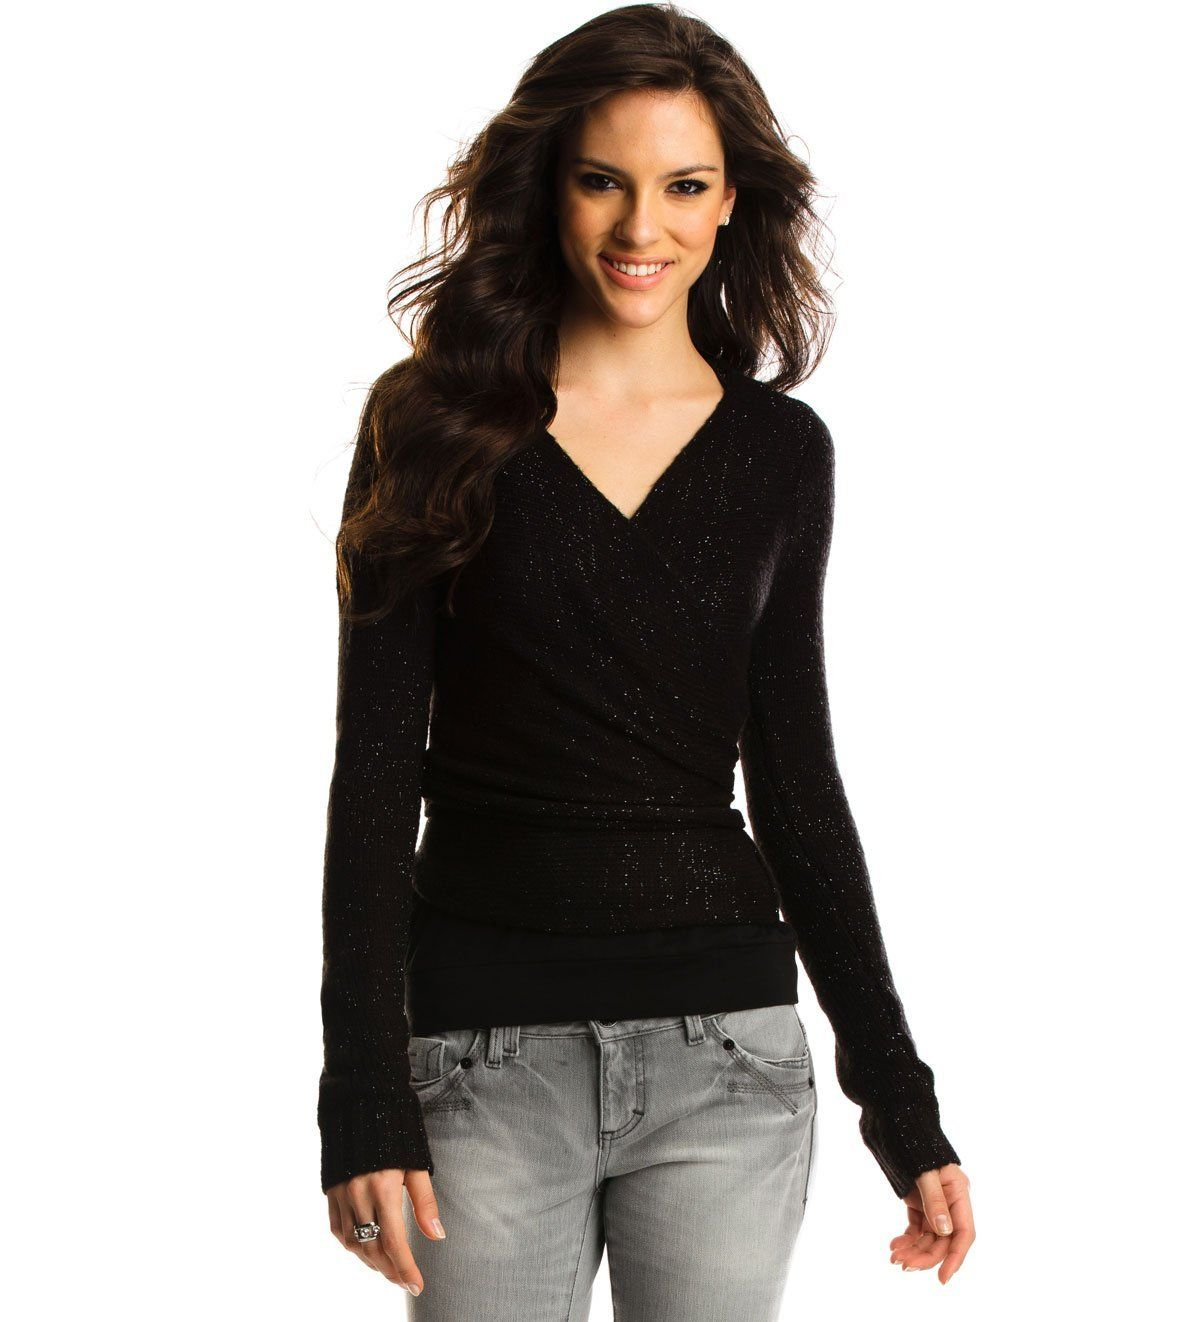 Armani Exchange Convertible Cardigan Sweaters for women